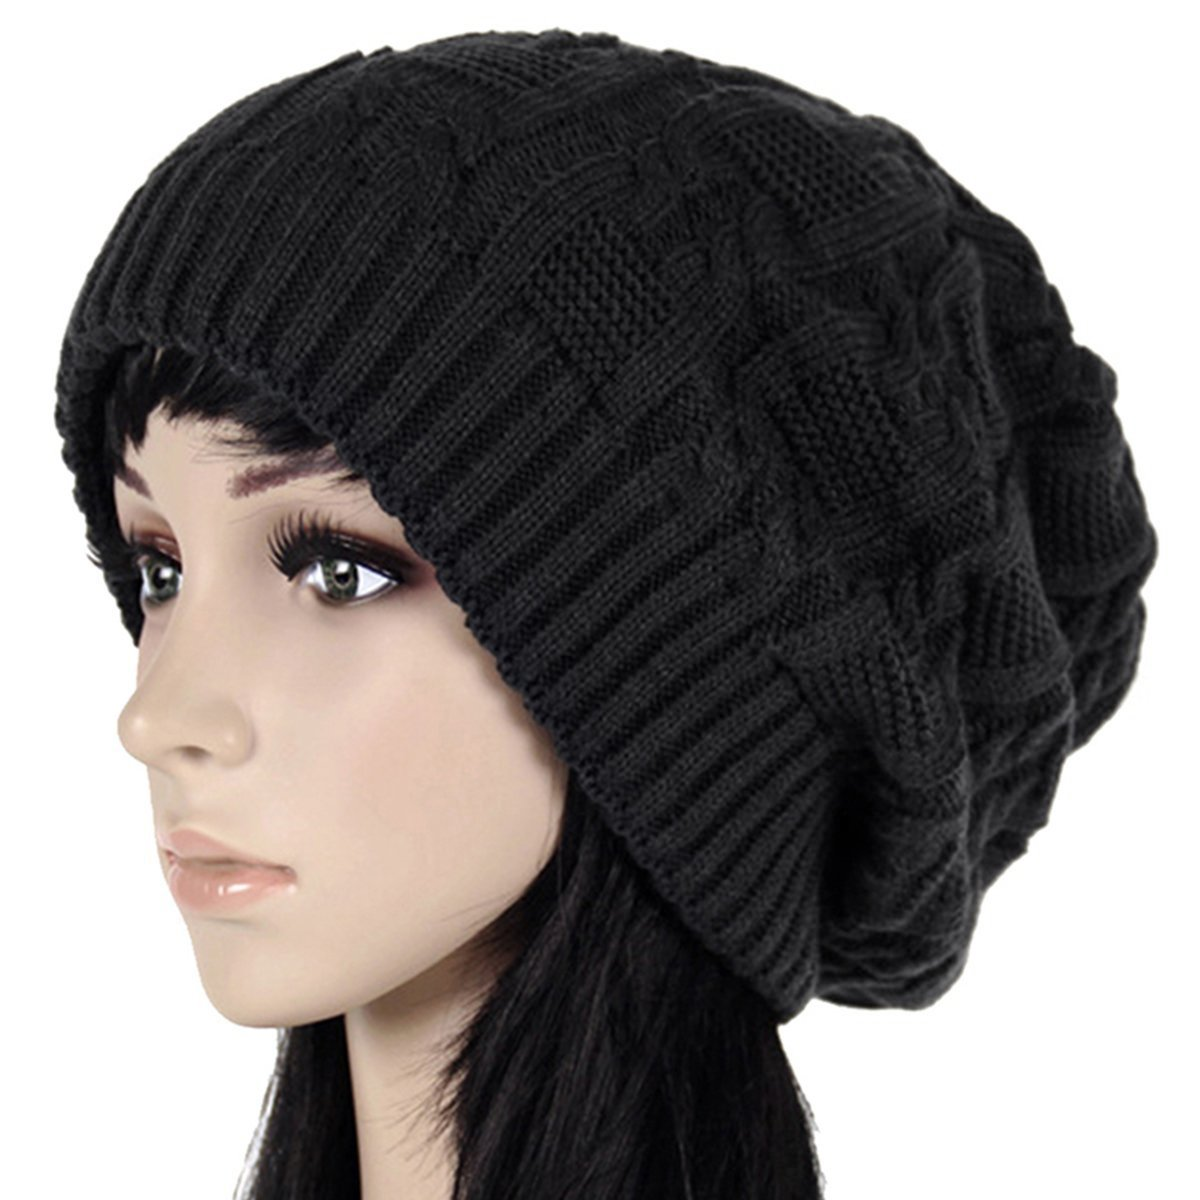 9c3dcebfa924e3 Oryer Womens Winter Knit Slouchy Beanie Baggy Warm Soft Chunky Cable Hats  at Amazon Women's Clothing store: